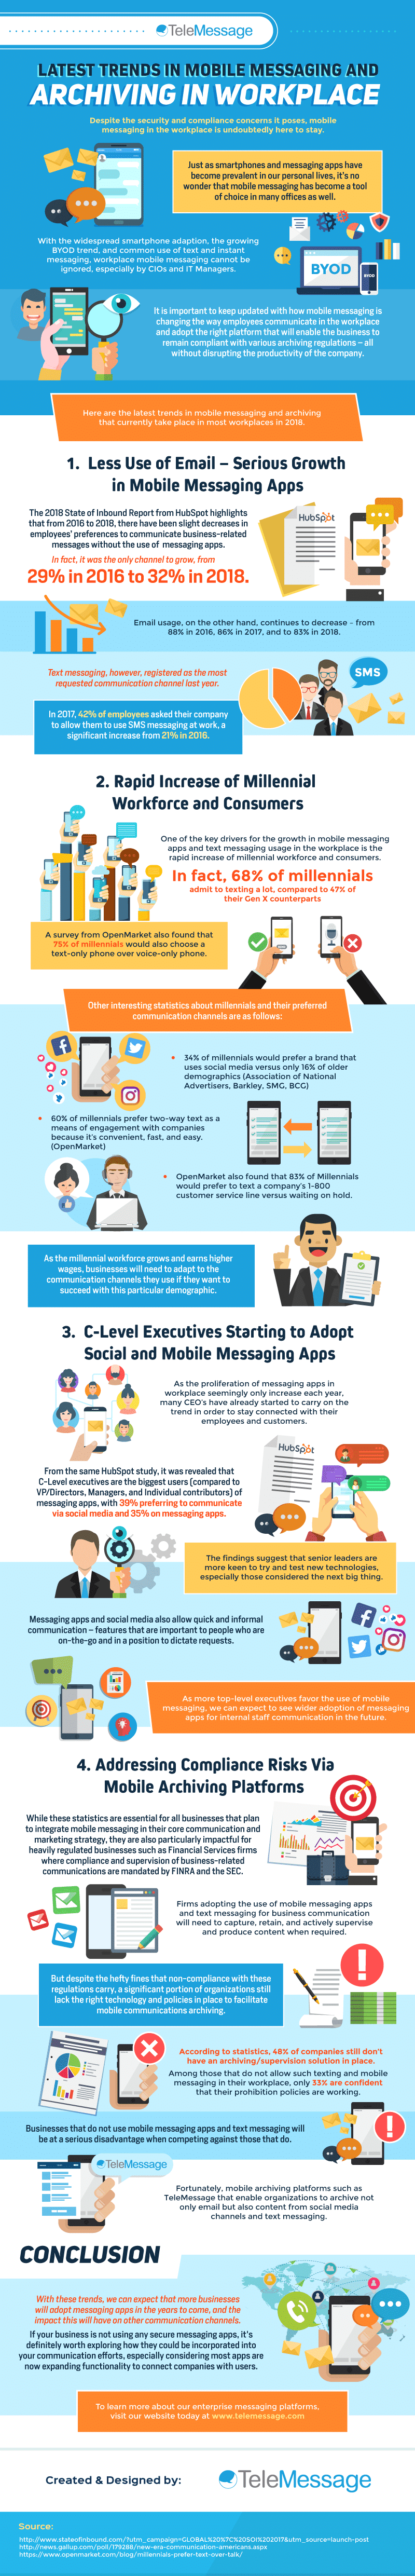 Latest Trends in Mobile Messaging and Archiving in Workplace #infographic